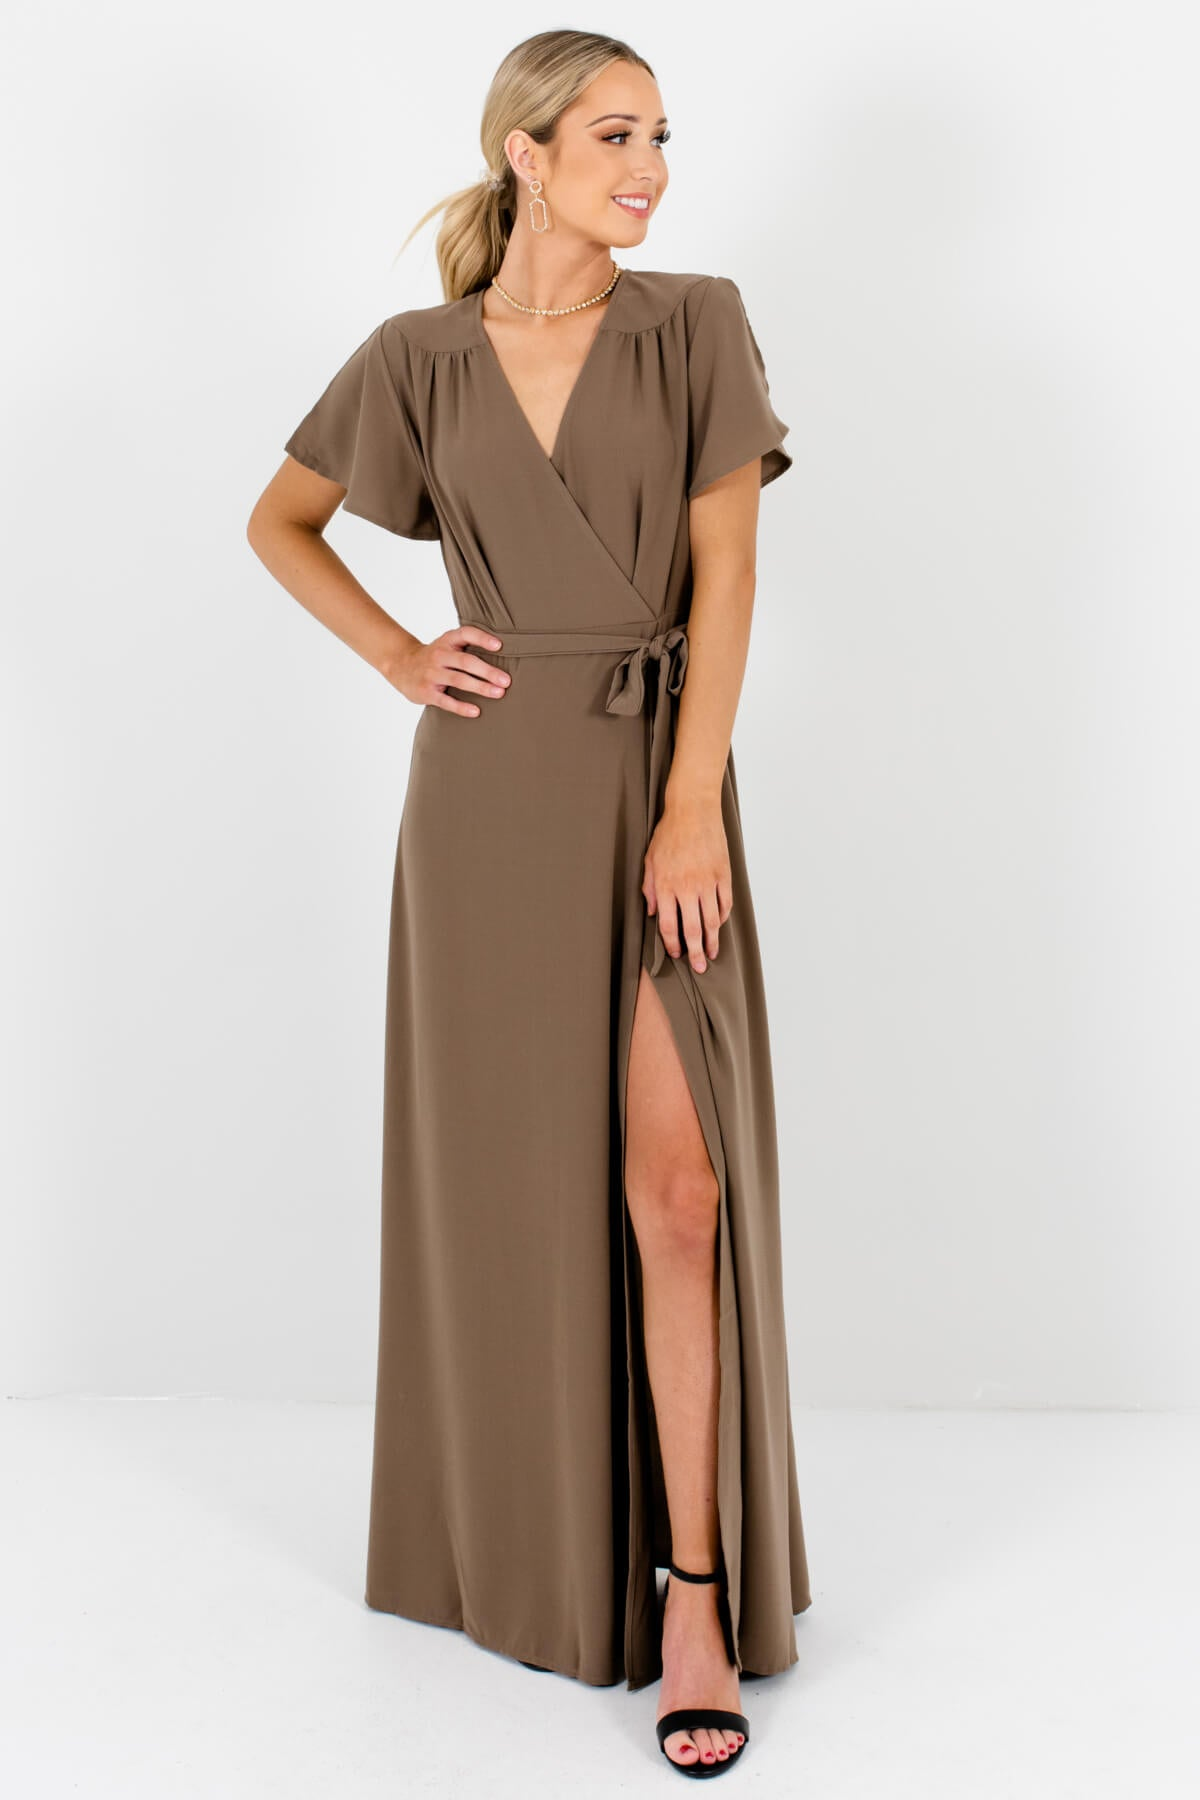 Brown Faux Wrap Style Boutique Maxi Dresses for Women